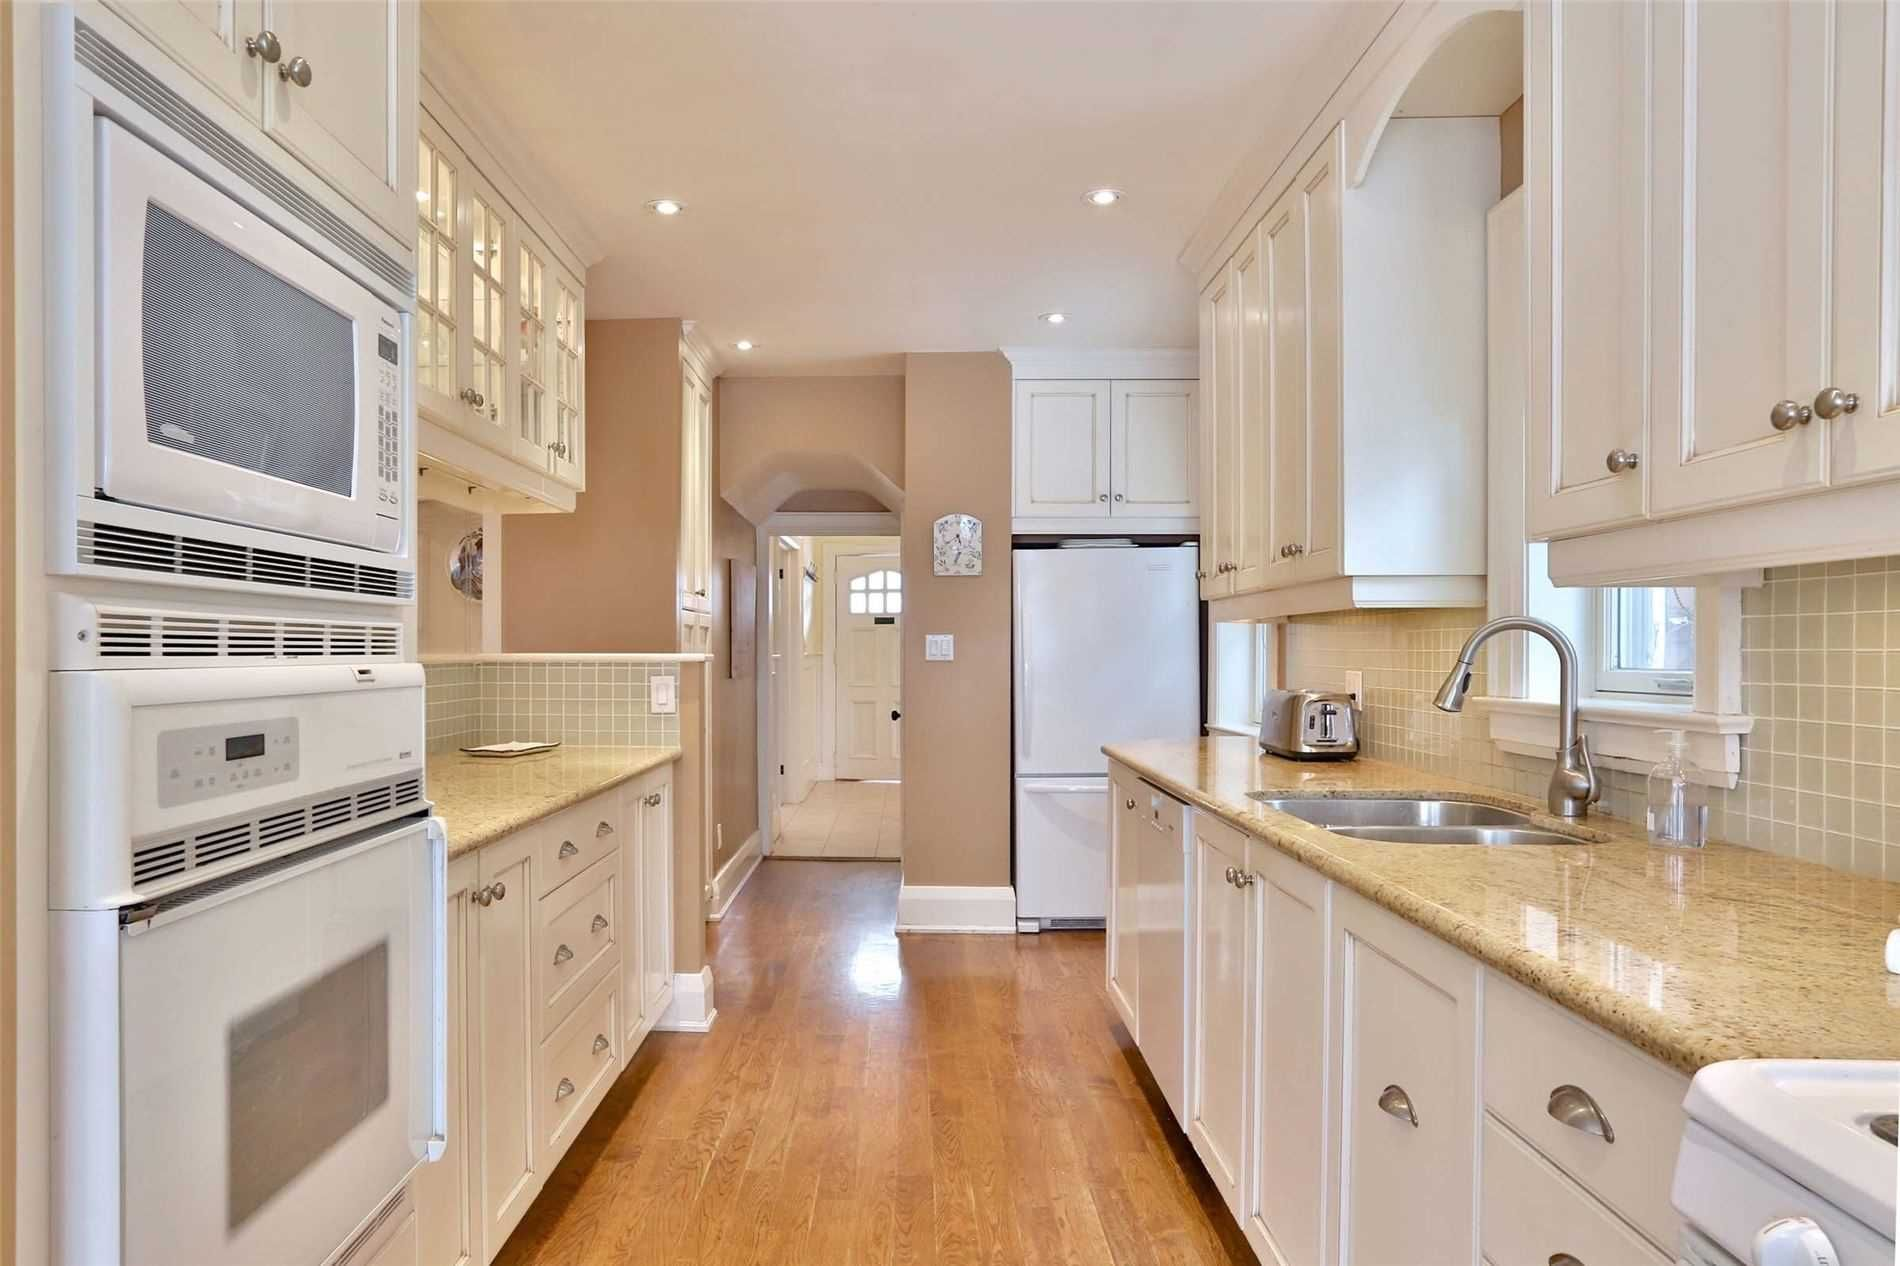 Photo 9: Photos: 15 Glen Castle Street in Toronto: Lawrence Park South House (2-Storey) for sale (Toronto C04)  : MLS®# C4704094